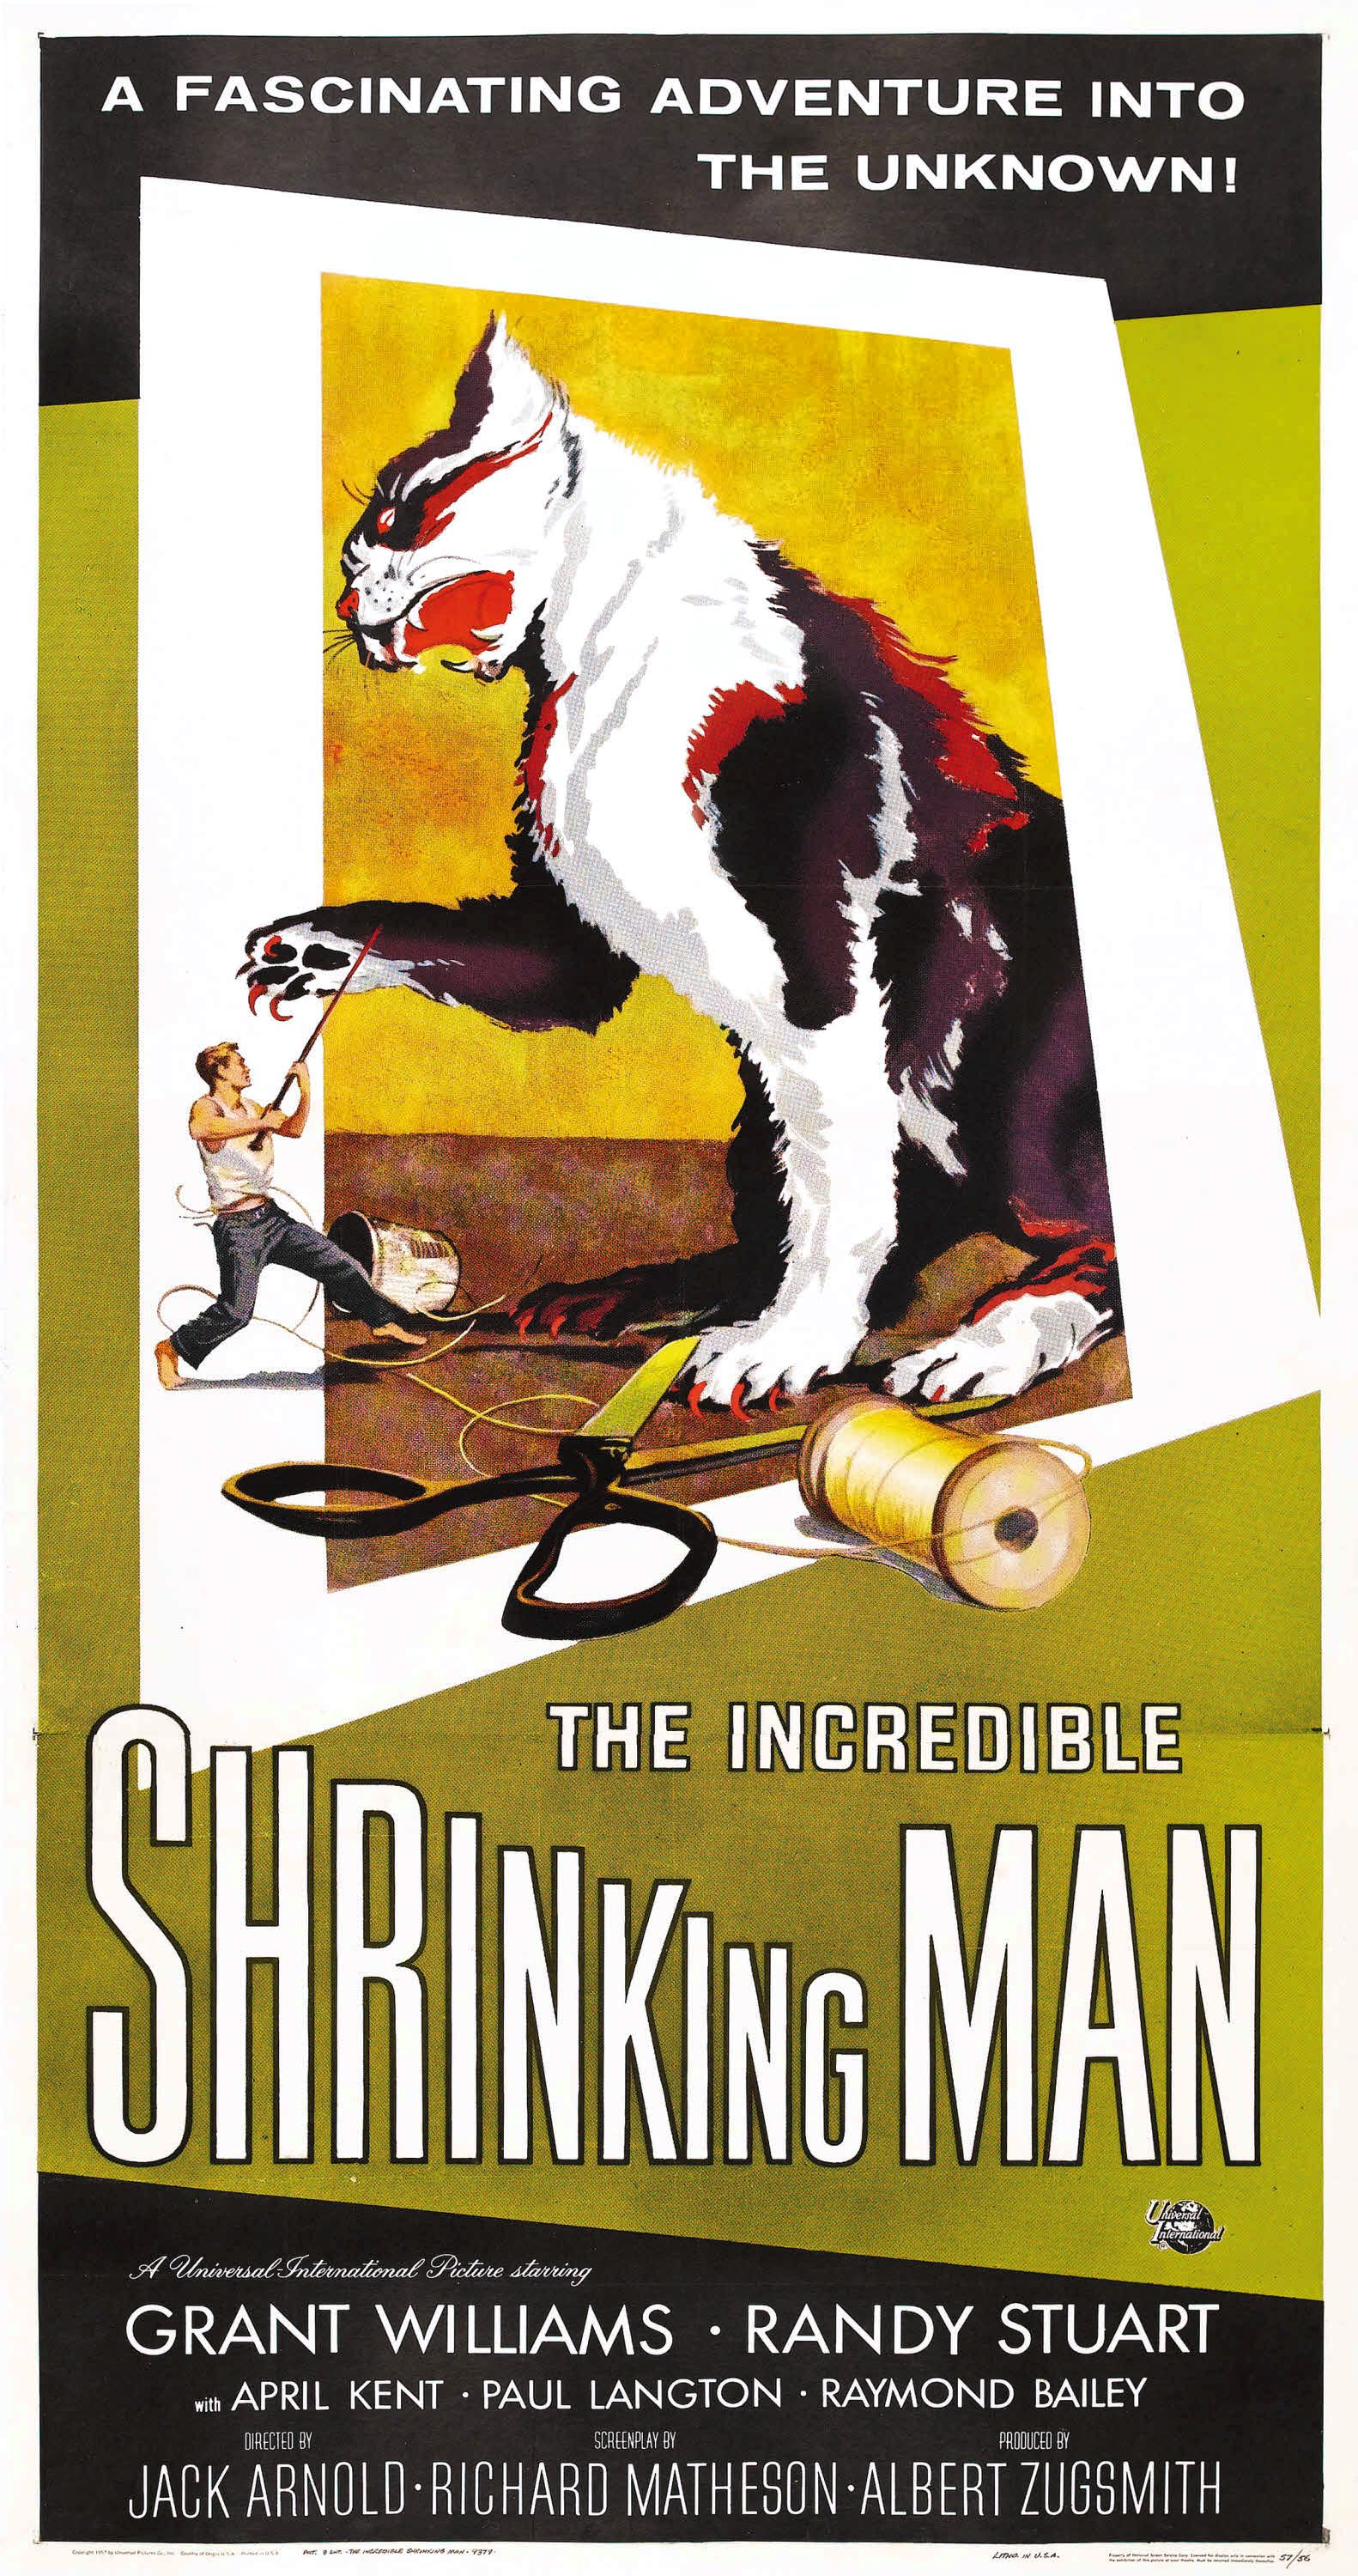 https://thetelltalemind.files.wordpress.com/2015/02/incredible_shrinking_man_poster_04.jpg Incredible Shrinking Man Poster